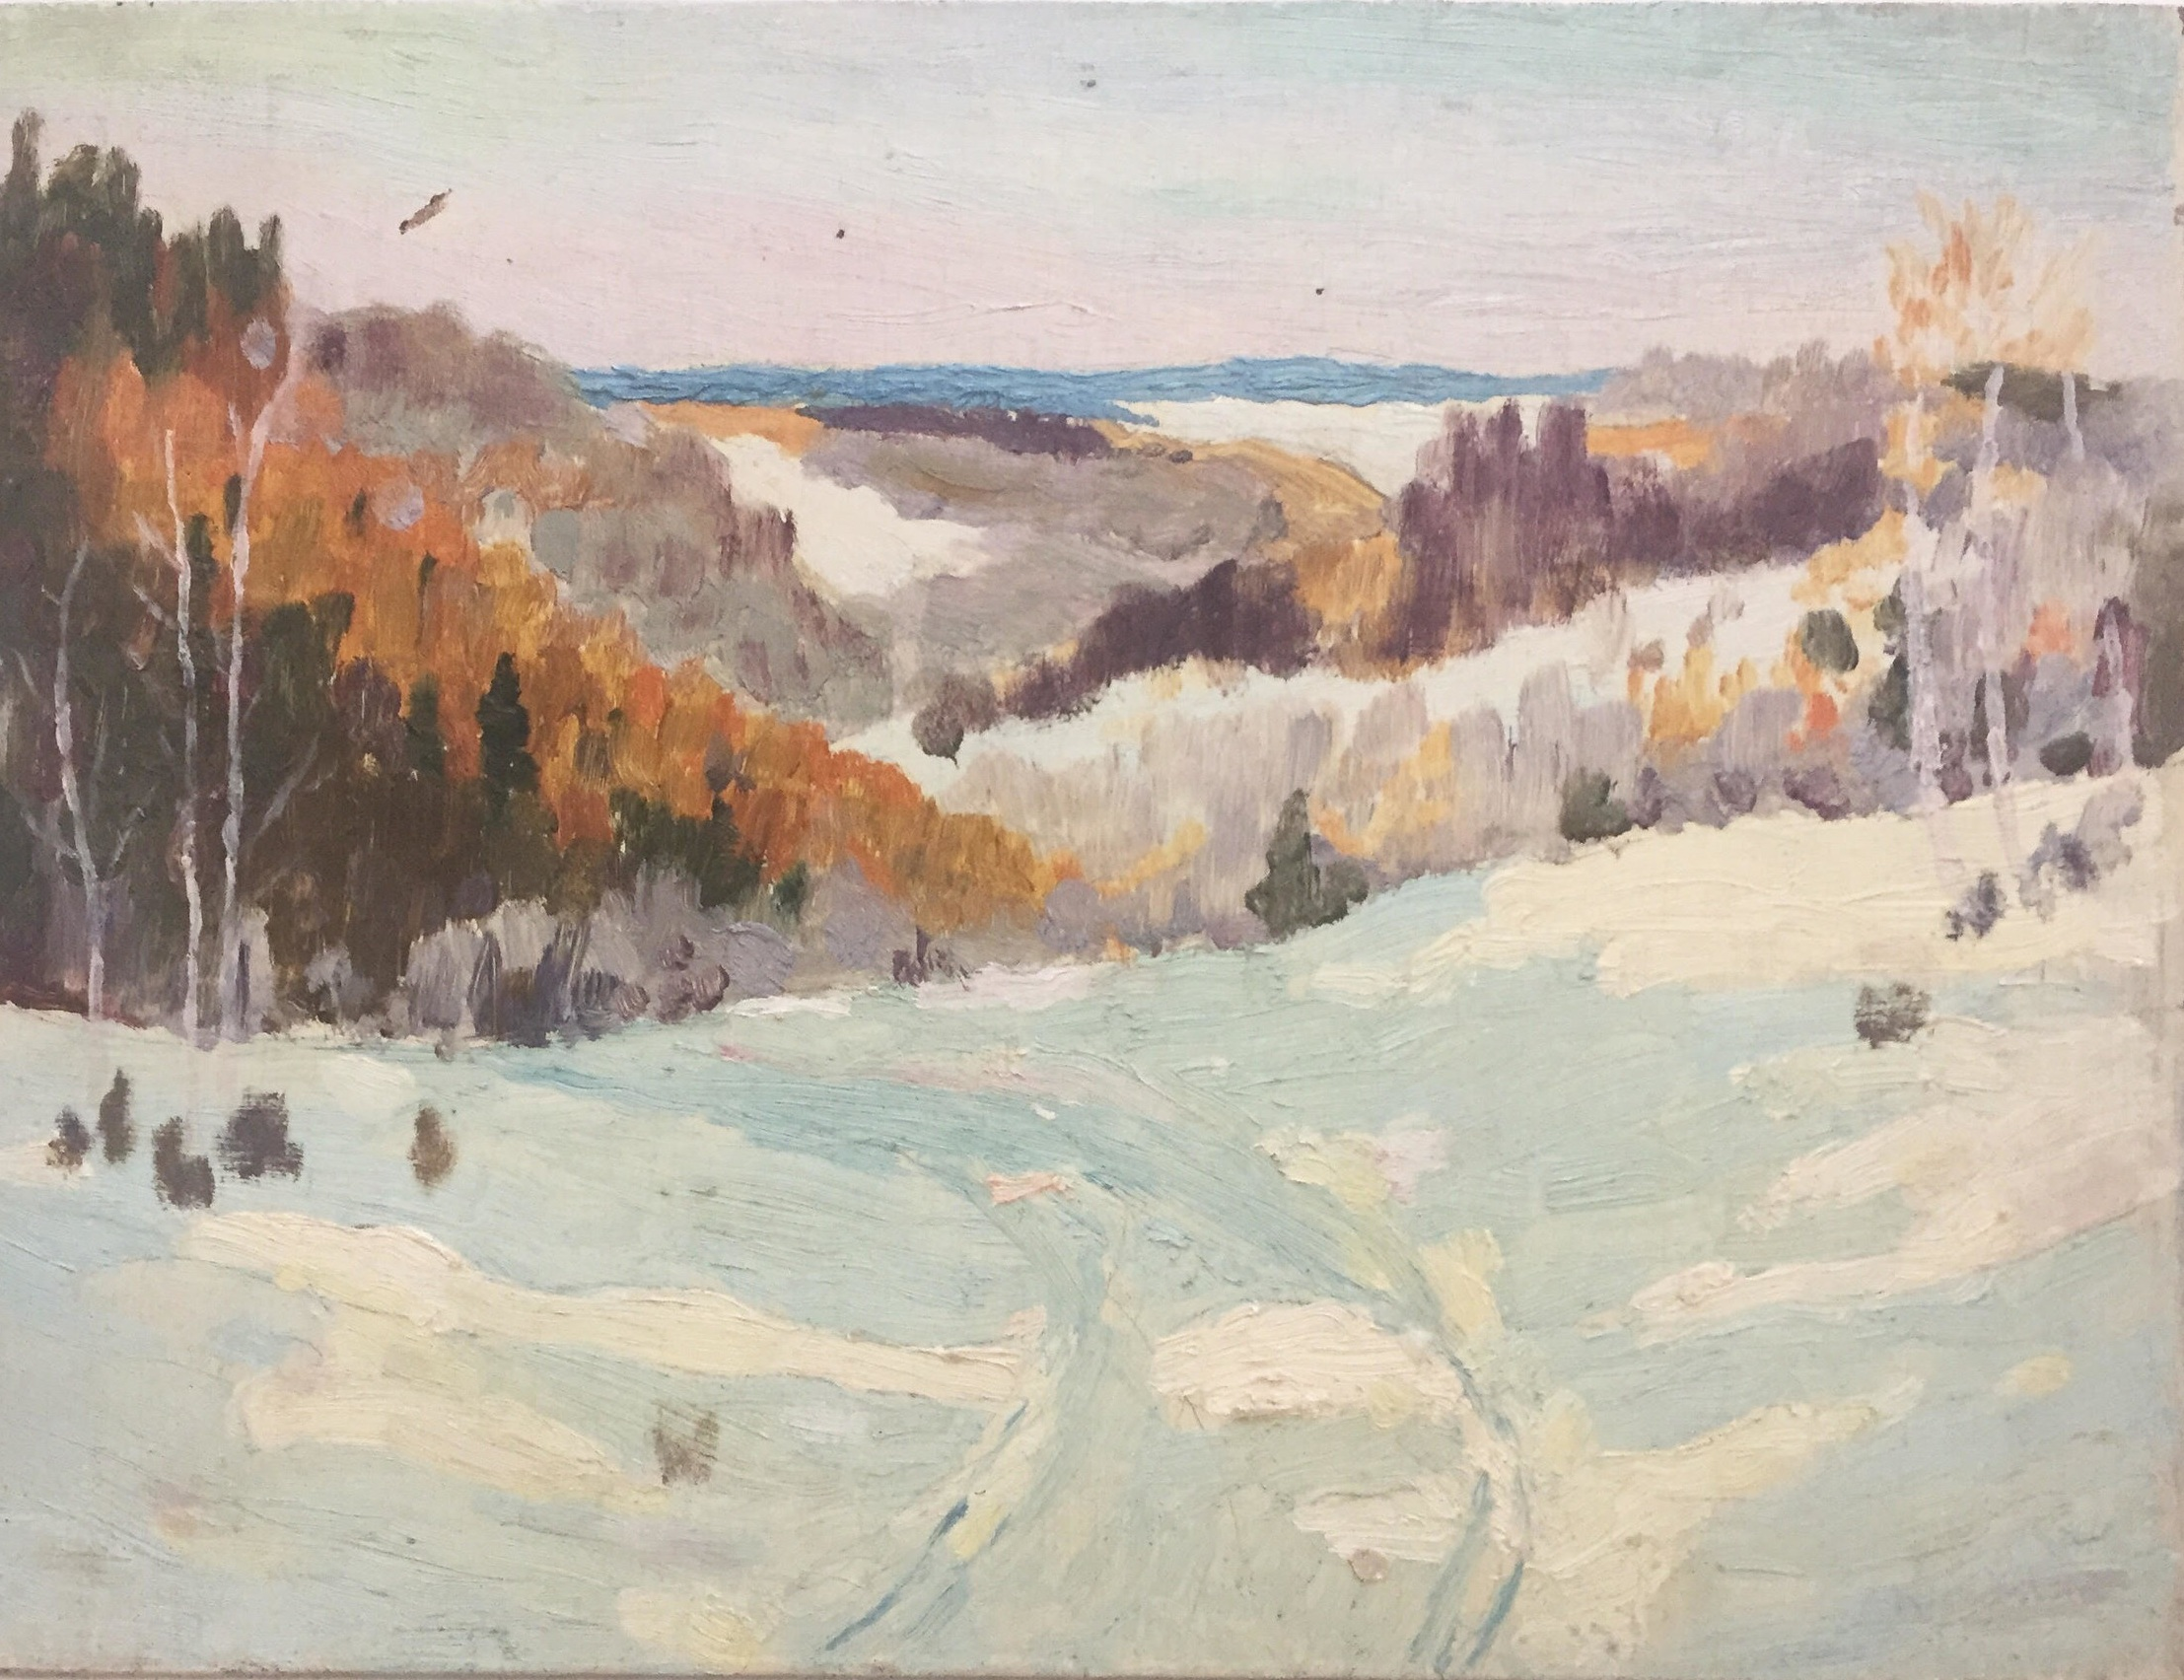 Winter Scene - Oil on board, 1930s-40s, 8.5